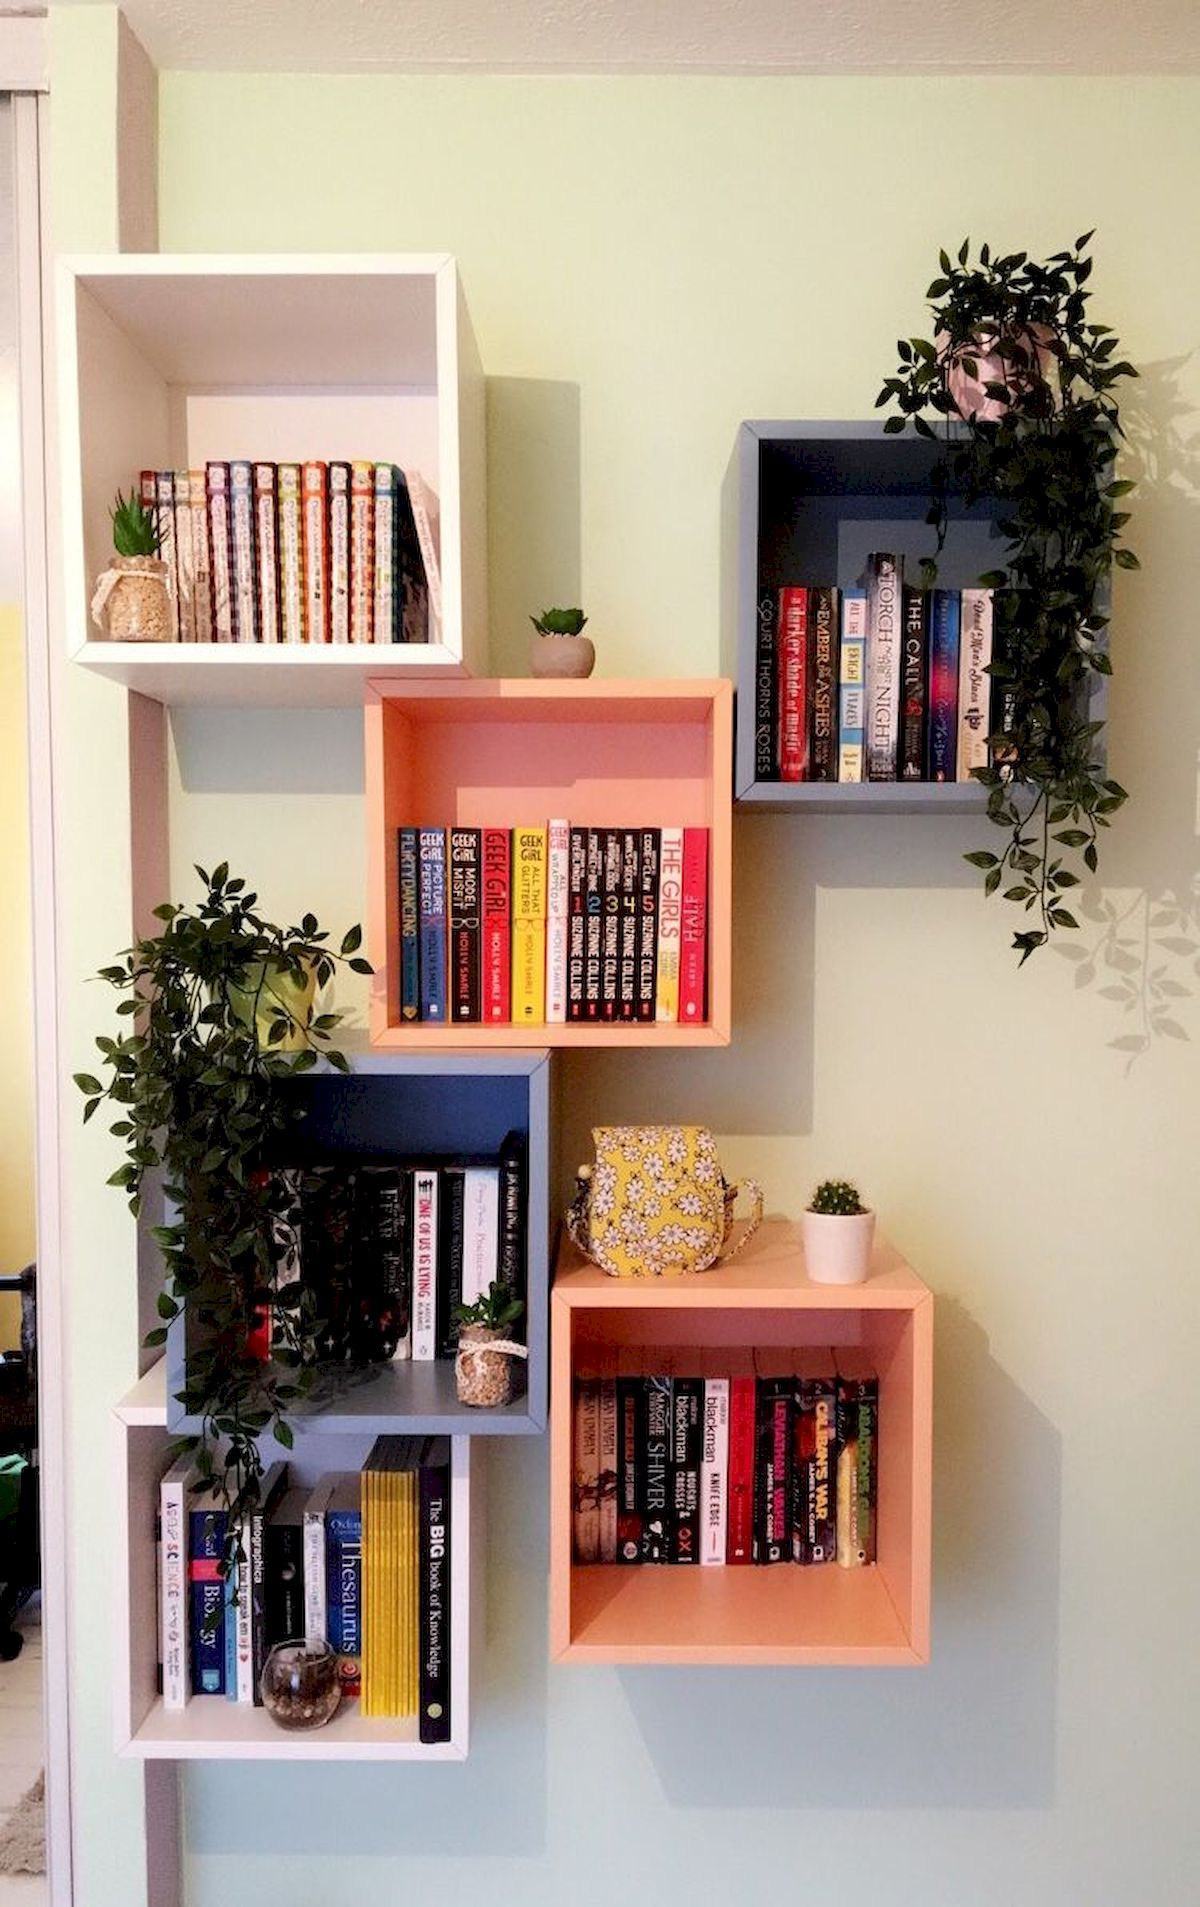 Beautiful Wall Bookshelves For Your Library In 2020 With Images Creative Bookshelves Bookshelf Decor Bookshelves In Bedroom